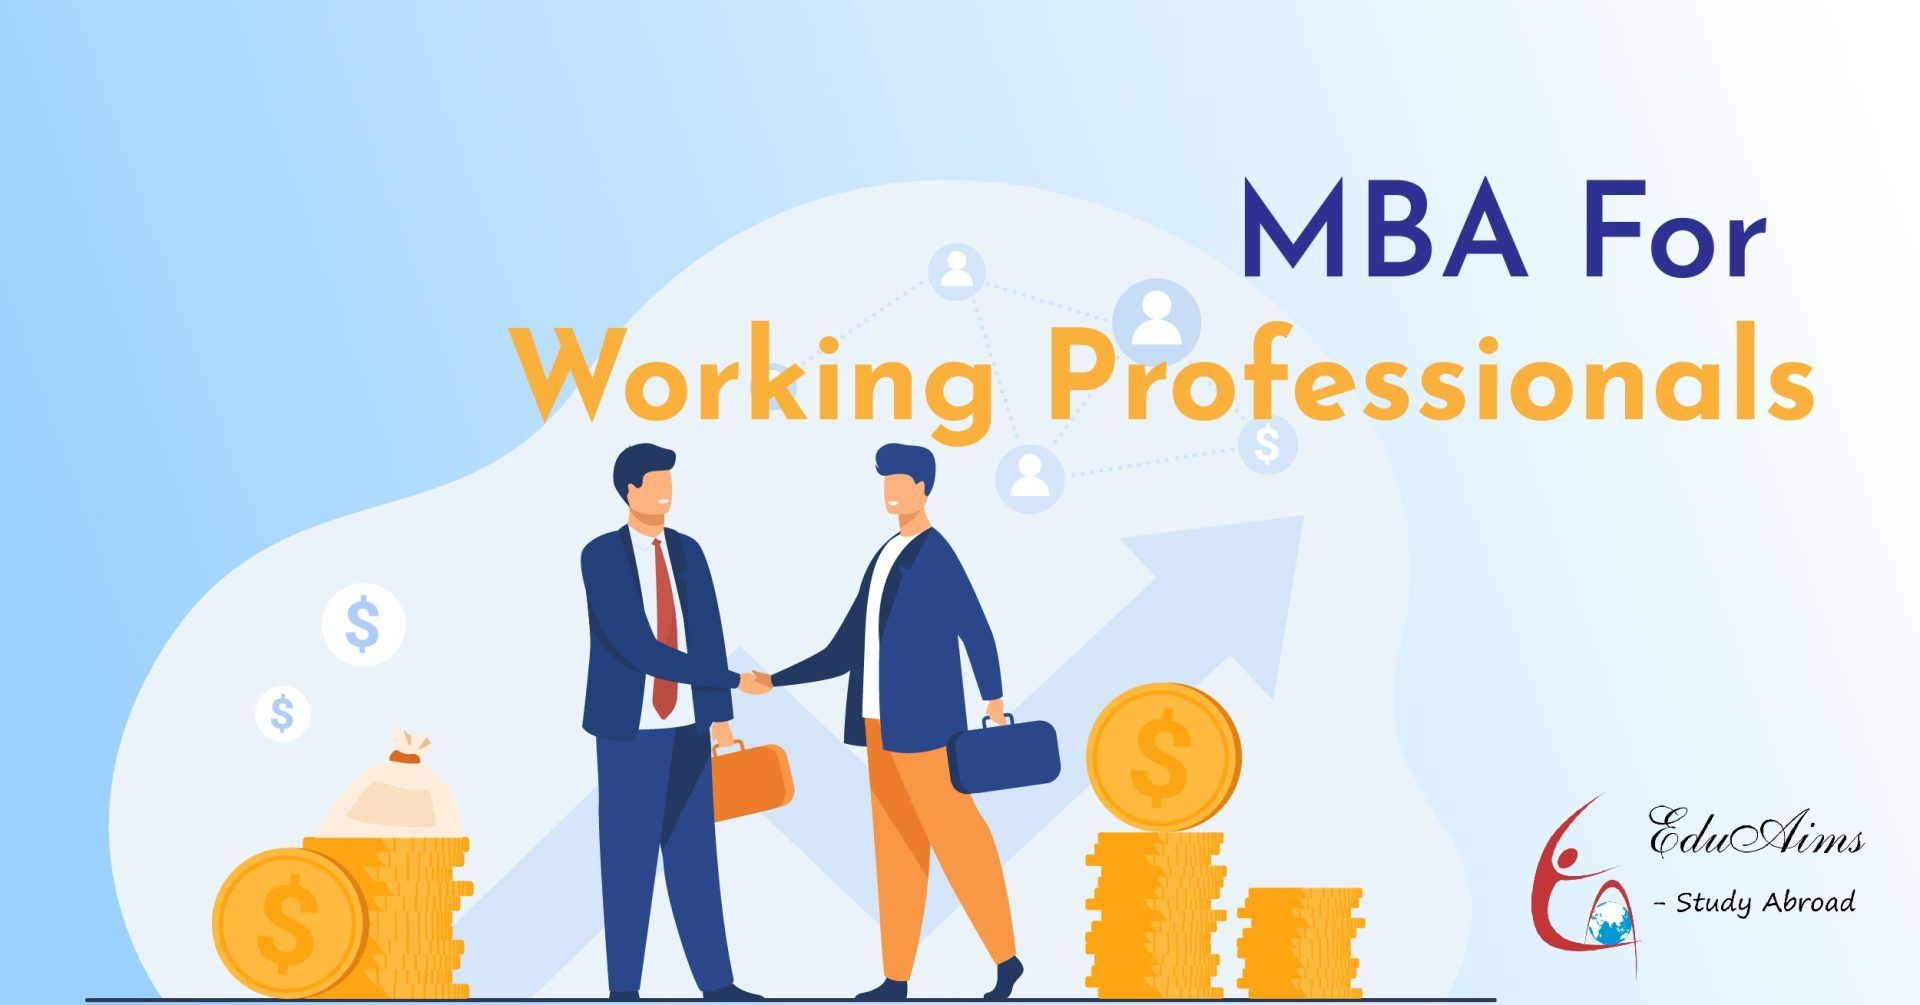 Untitled 13 01 EduAims Top MBA For Working Professionals